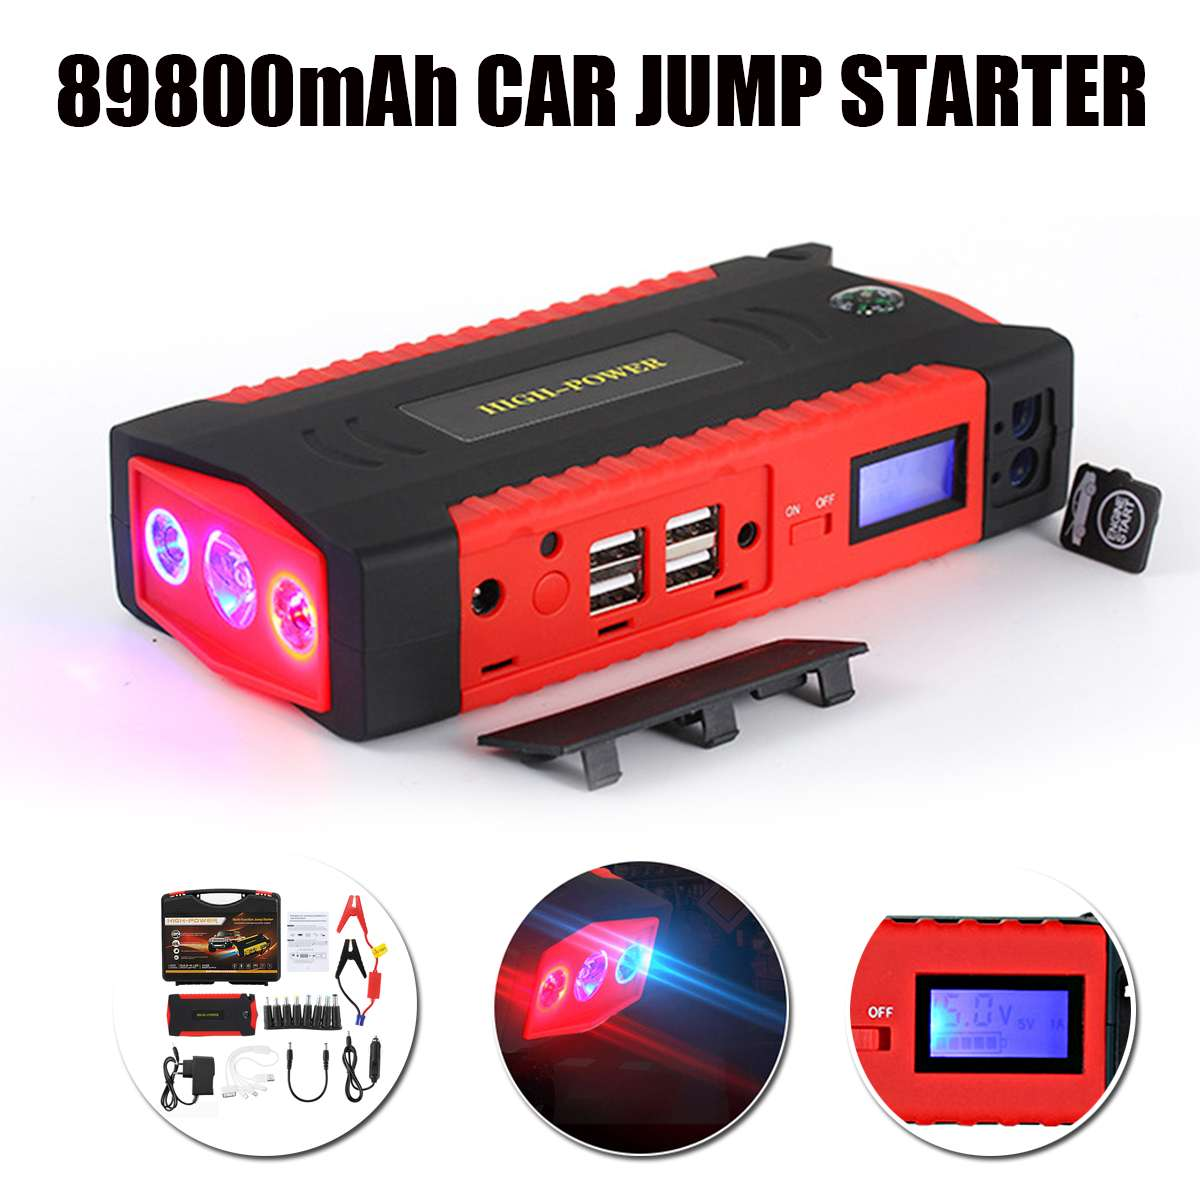 Multifunction Car Jump Starter Power Bank 4 USB Battery Booster Charger 12V Starting Device Petrol Diesels Car Starter 89800mAhMultifunction Car Jump Starter Power Bank 4 USB Battery Booster Charger 12V Starting Device Petrol Diesels Car Starter 89800mAh